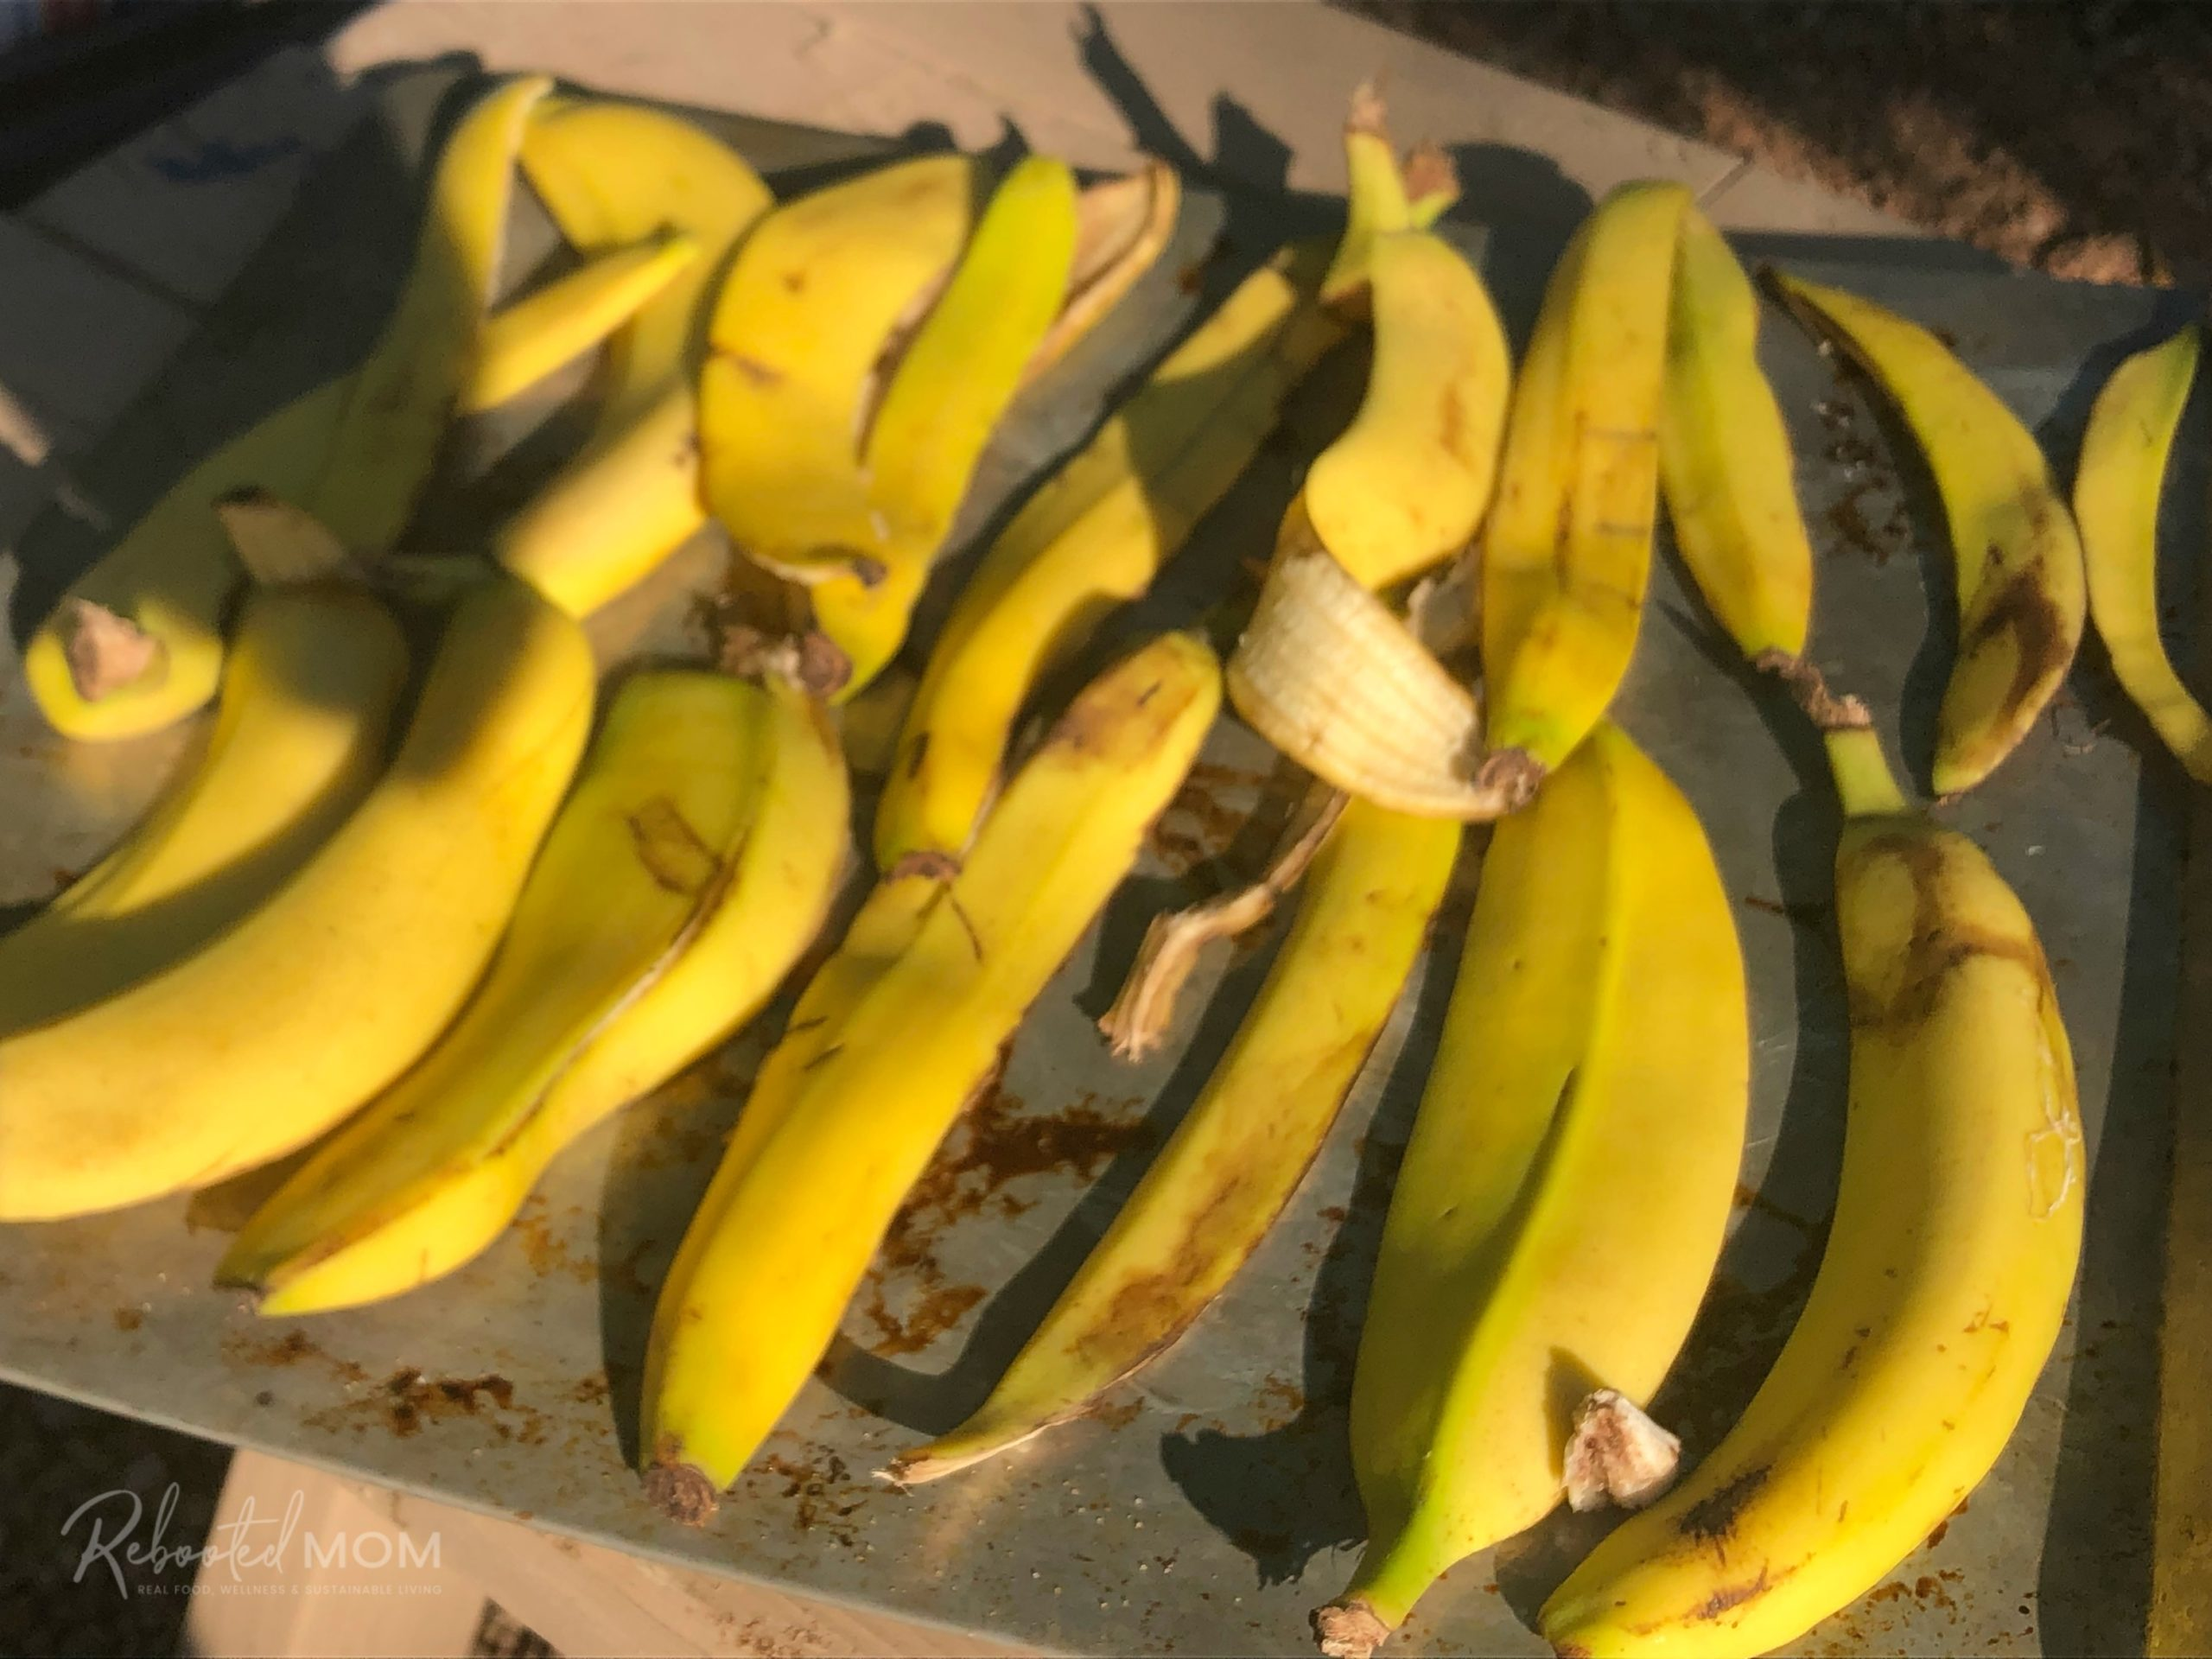 Source: https://www.rebootedmom.com/banana-peel-fertilizer/